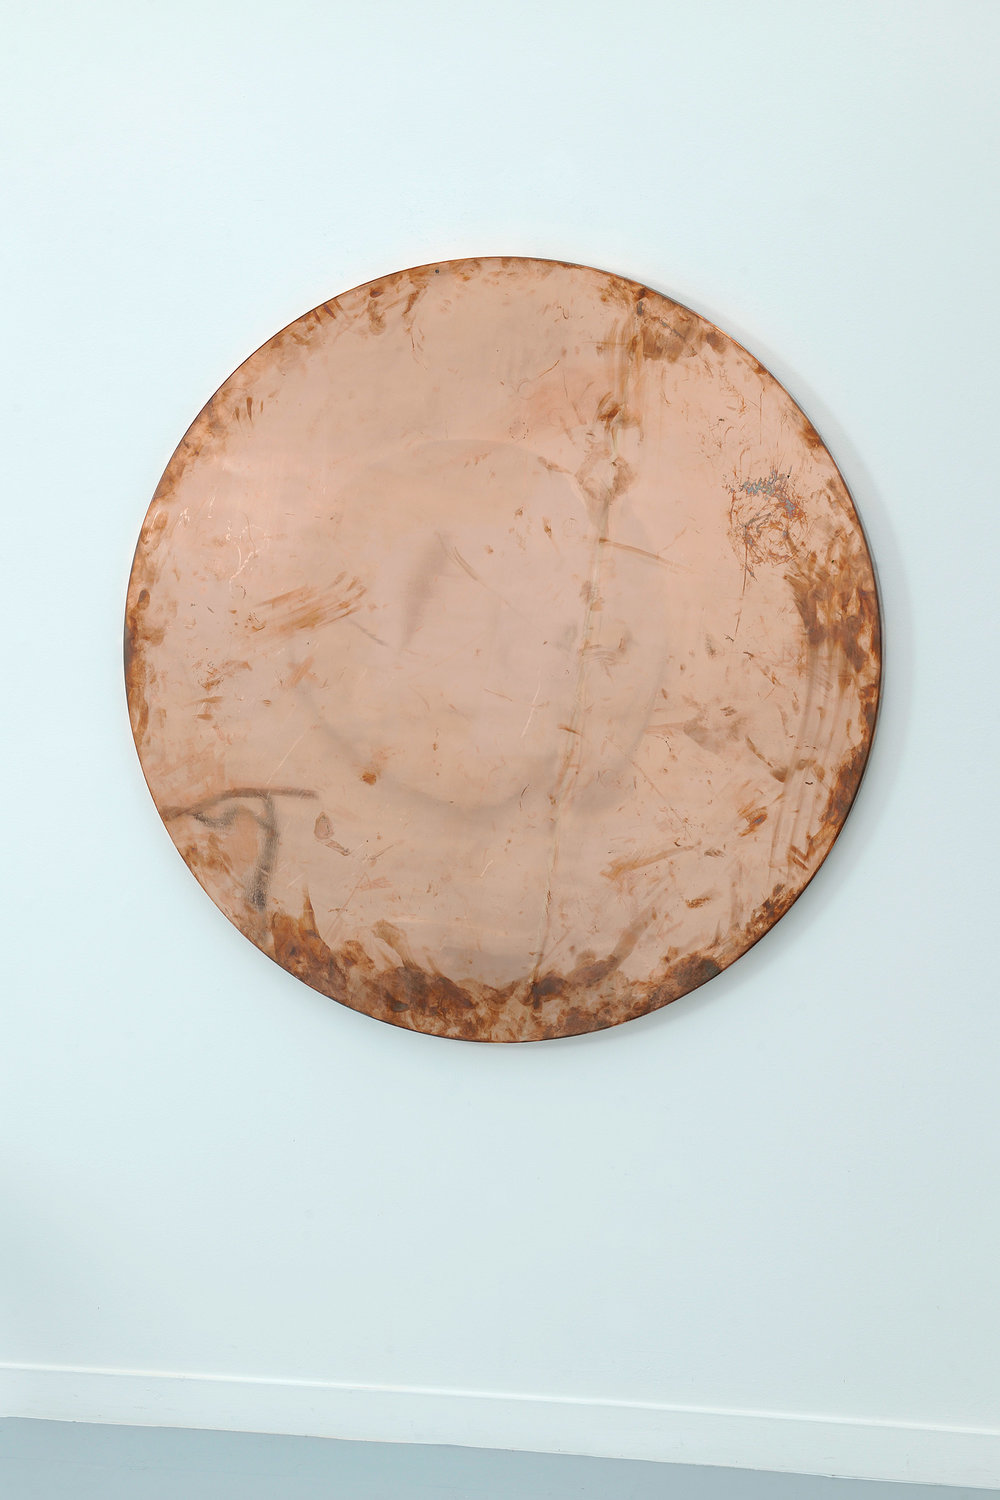 Copper Surrogate (Table: designed by unknown, date unknown; Galerie Rodolphe Janssen, Brussels, Belgium, September 7th, 2011), 2011   2011  Polished copper table top and powder-coat steel  55 inches diam.   Surrogates (Tabletop and Desktop), 2008–    Diapositives, 2011